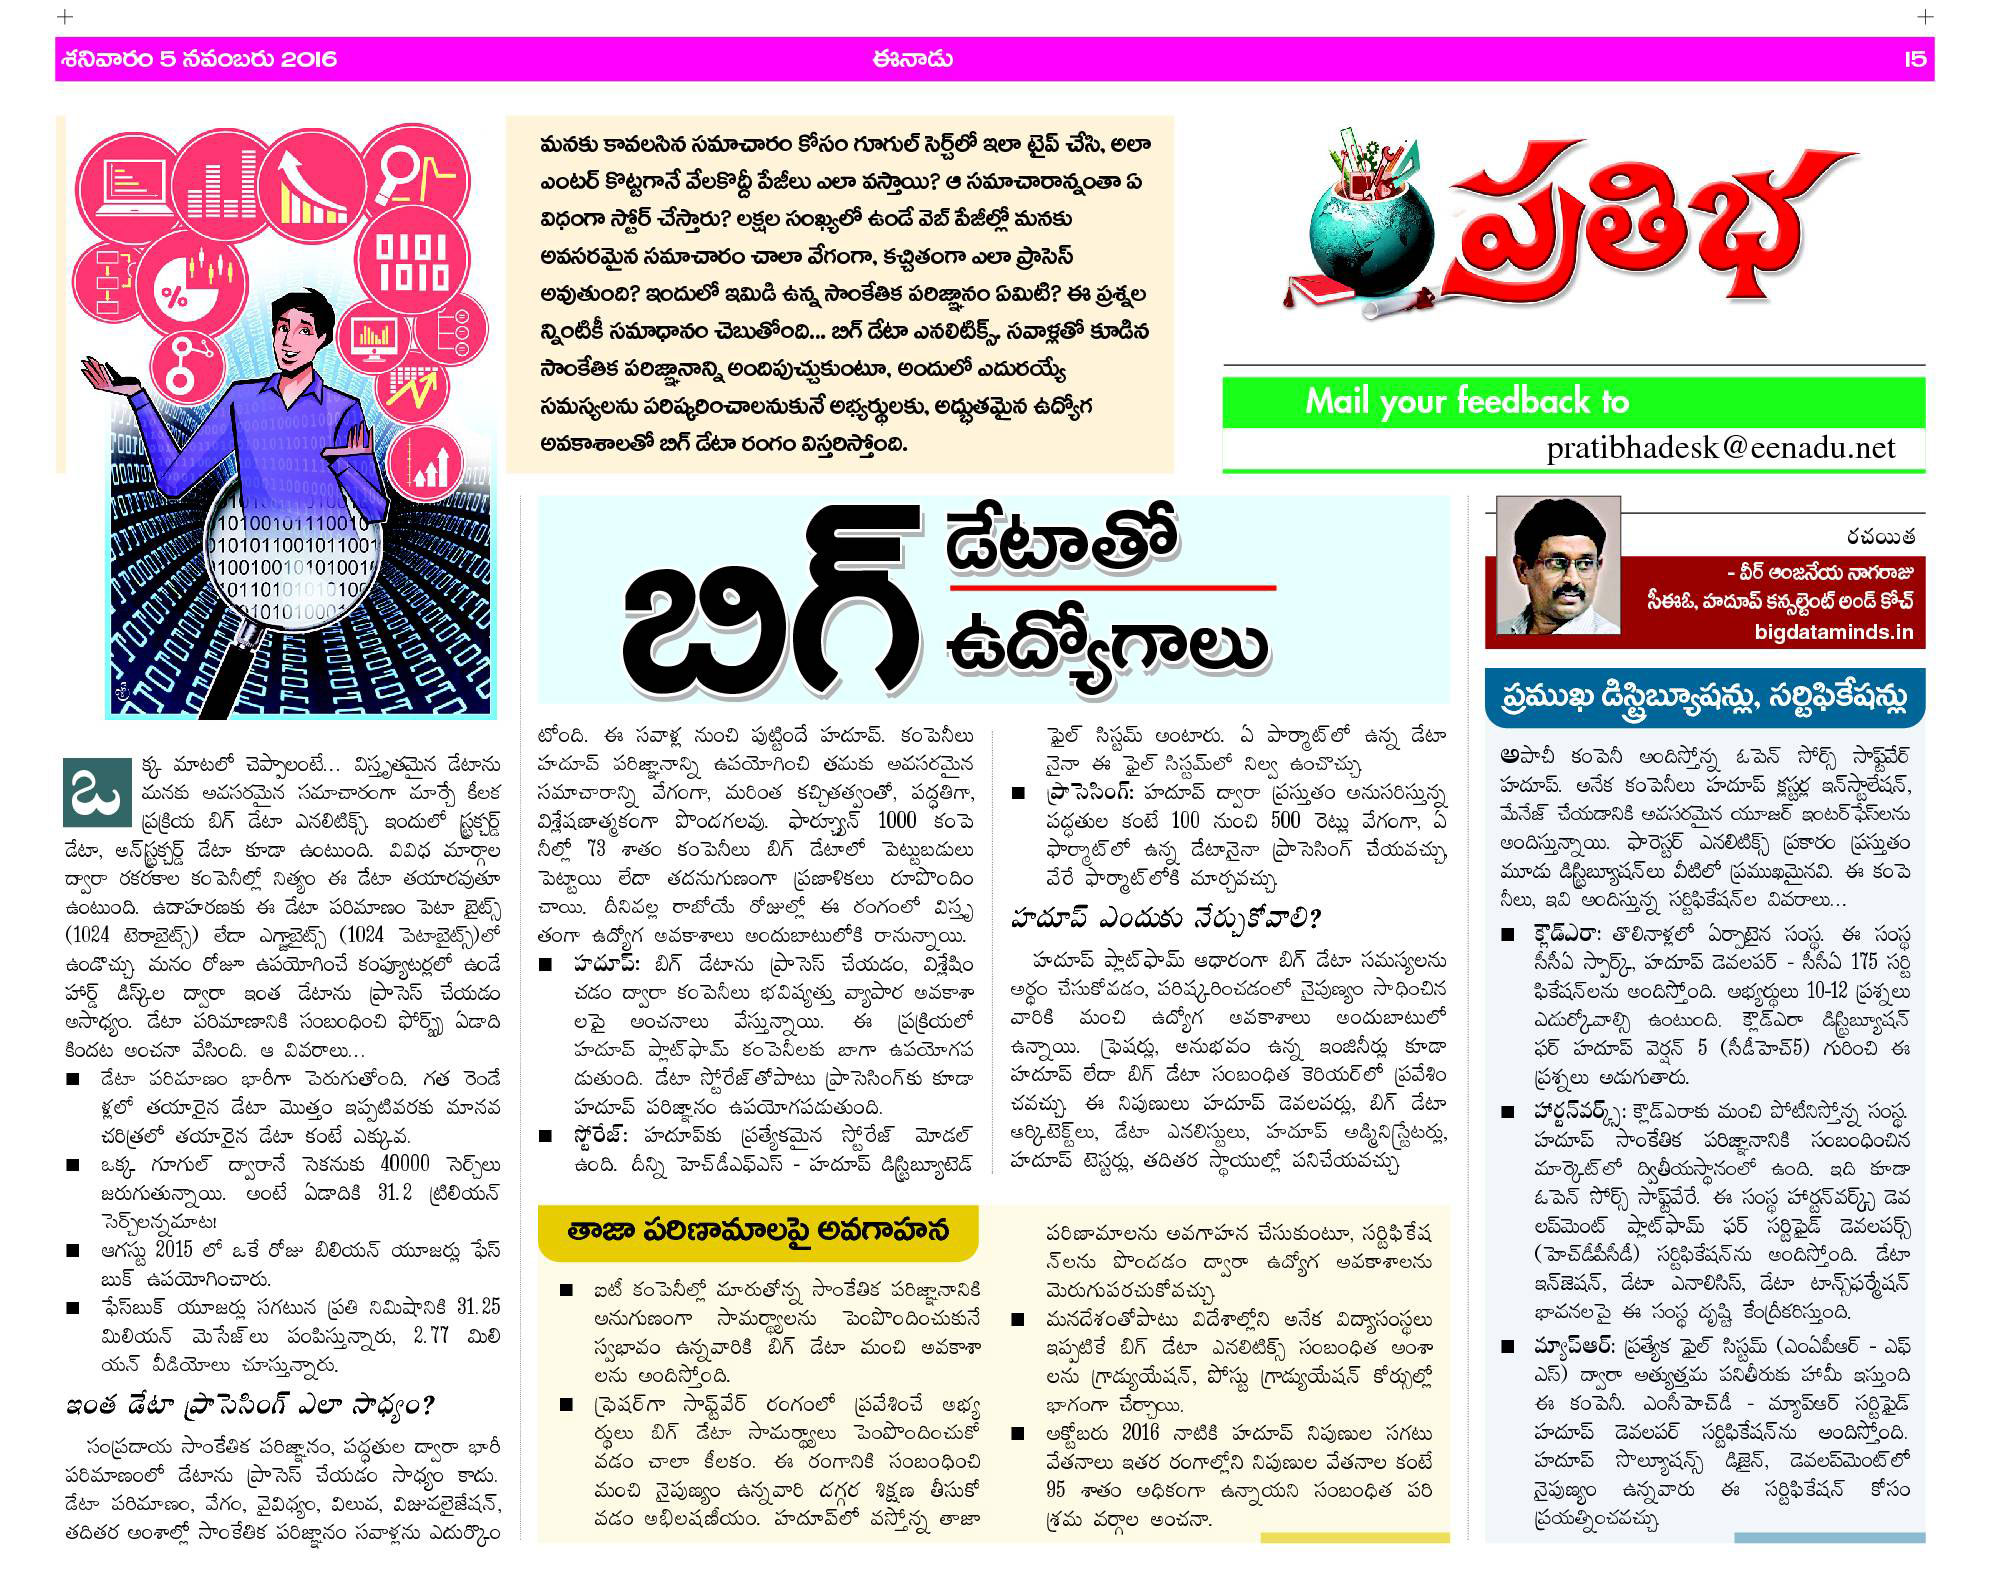 Big data and Career Oppertunities - EENADU - Socialprachar